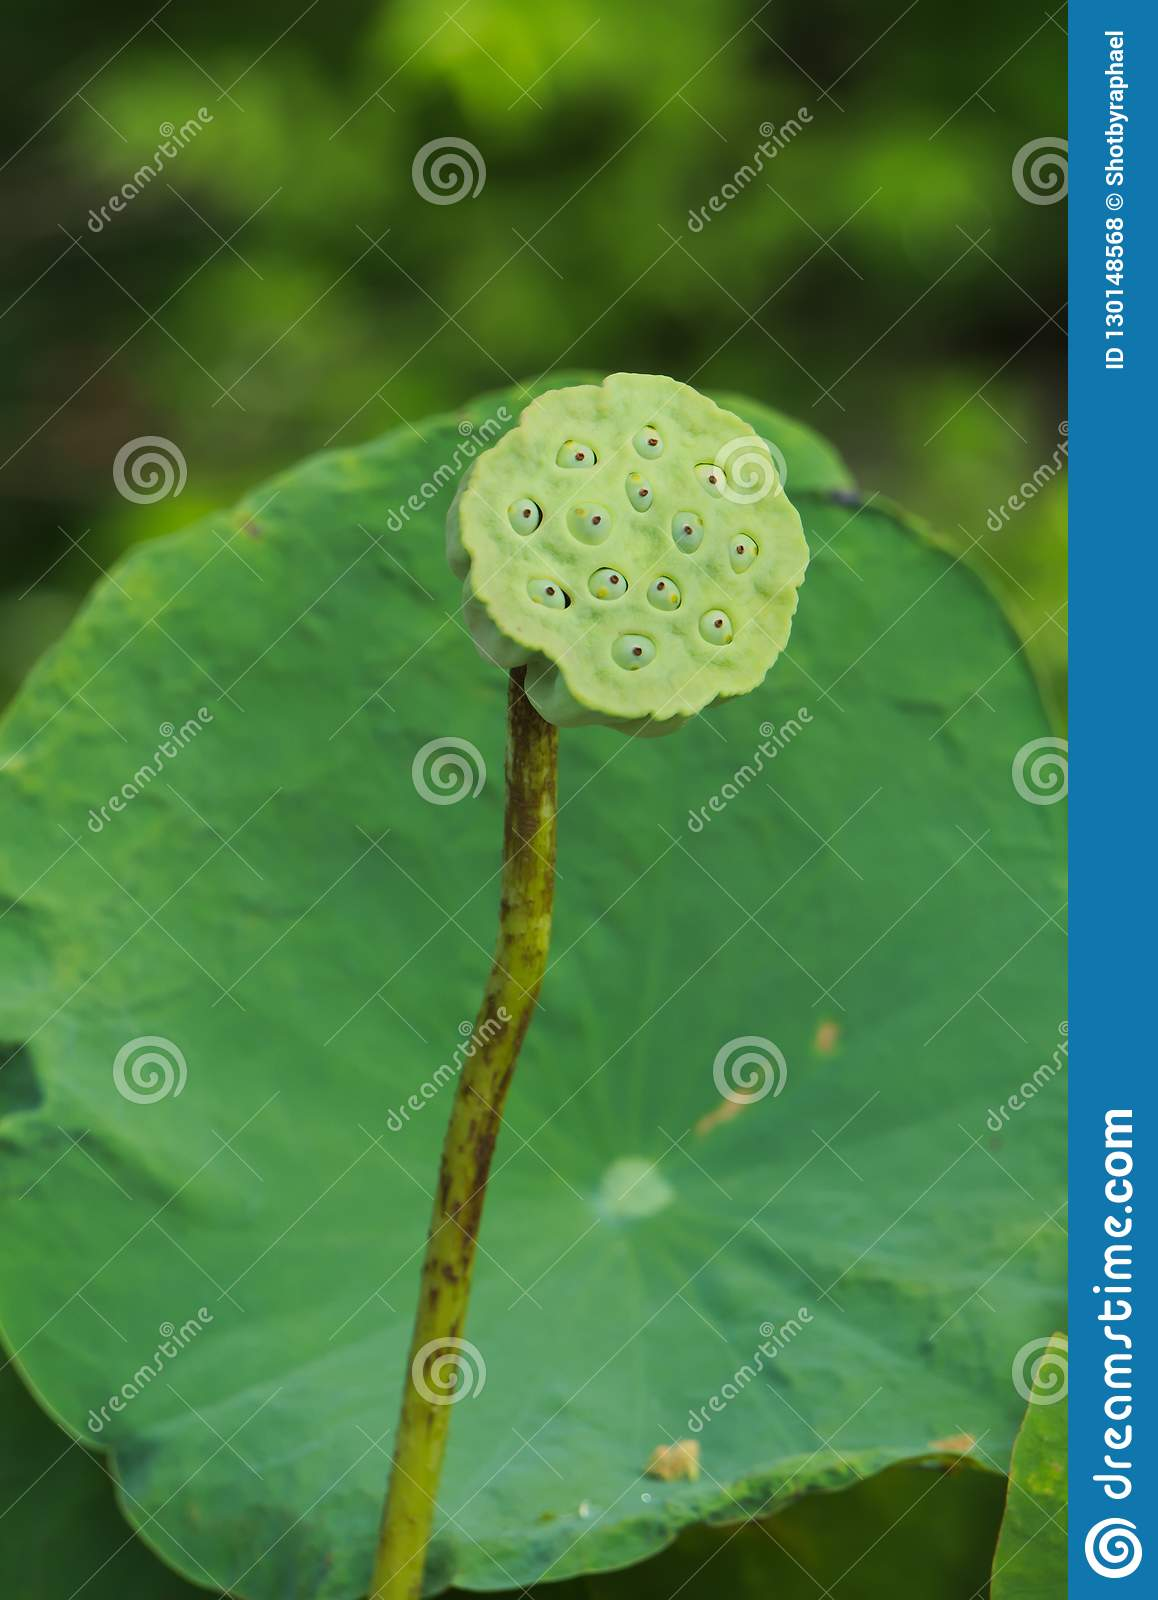 A Single Tall Green Lotus Stem Seeds And Pod Fronting